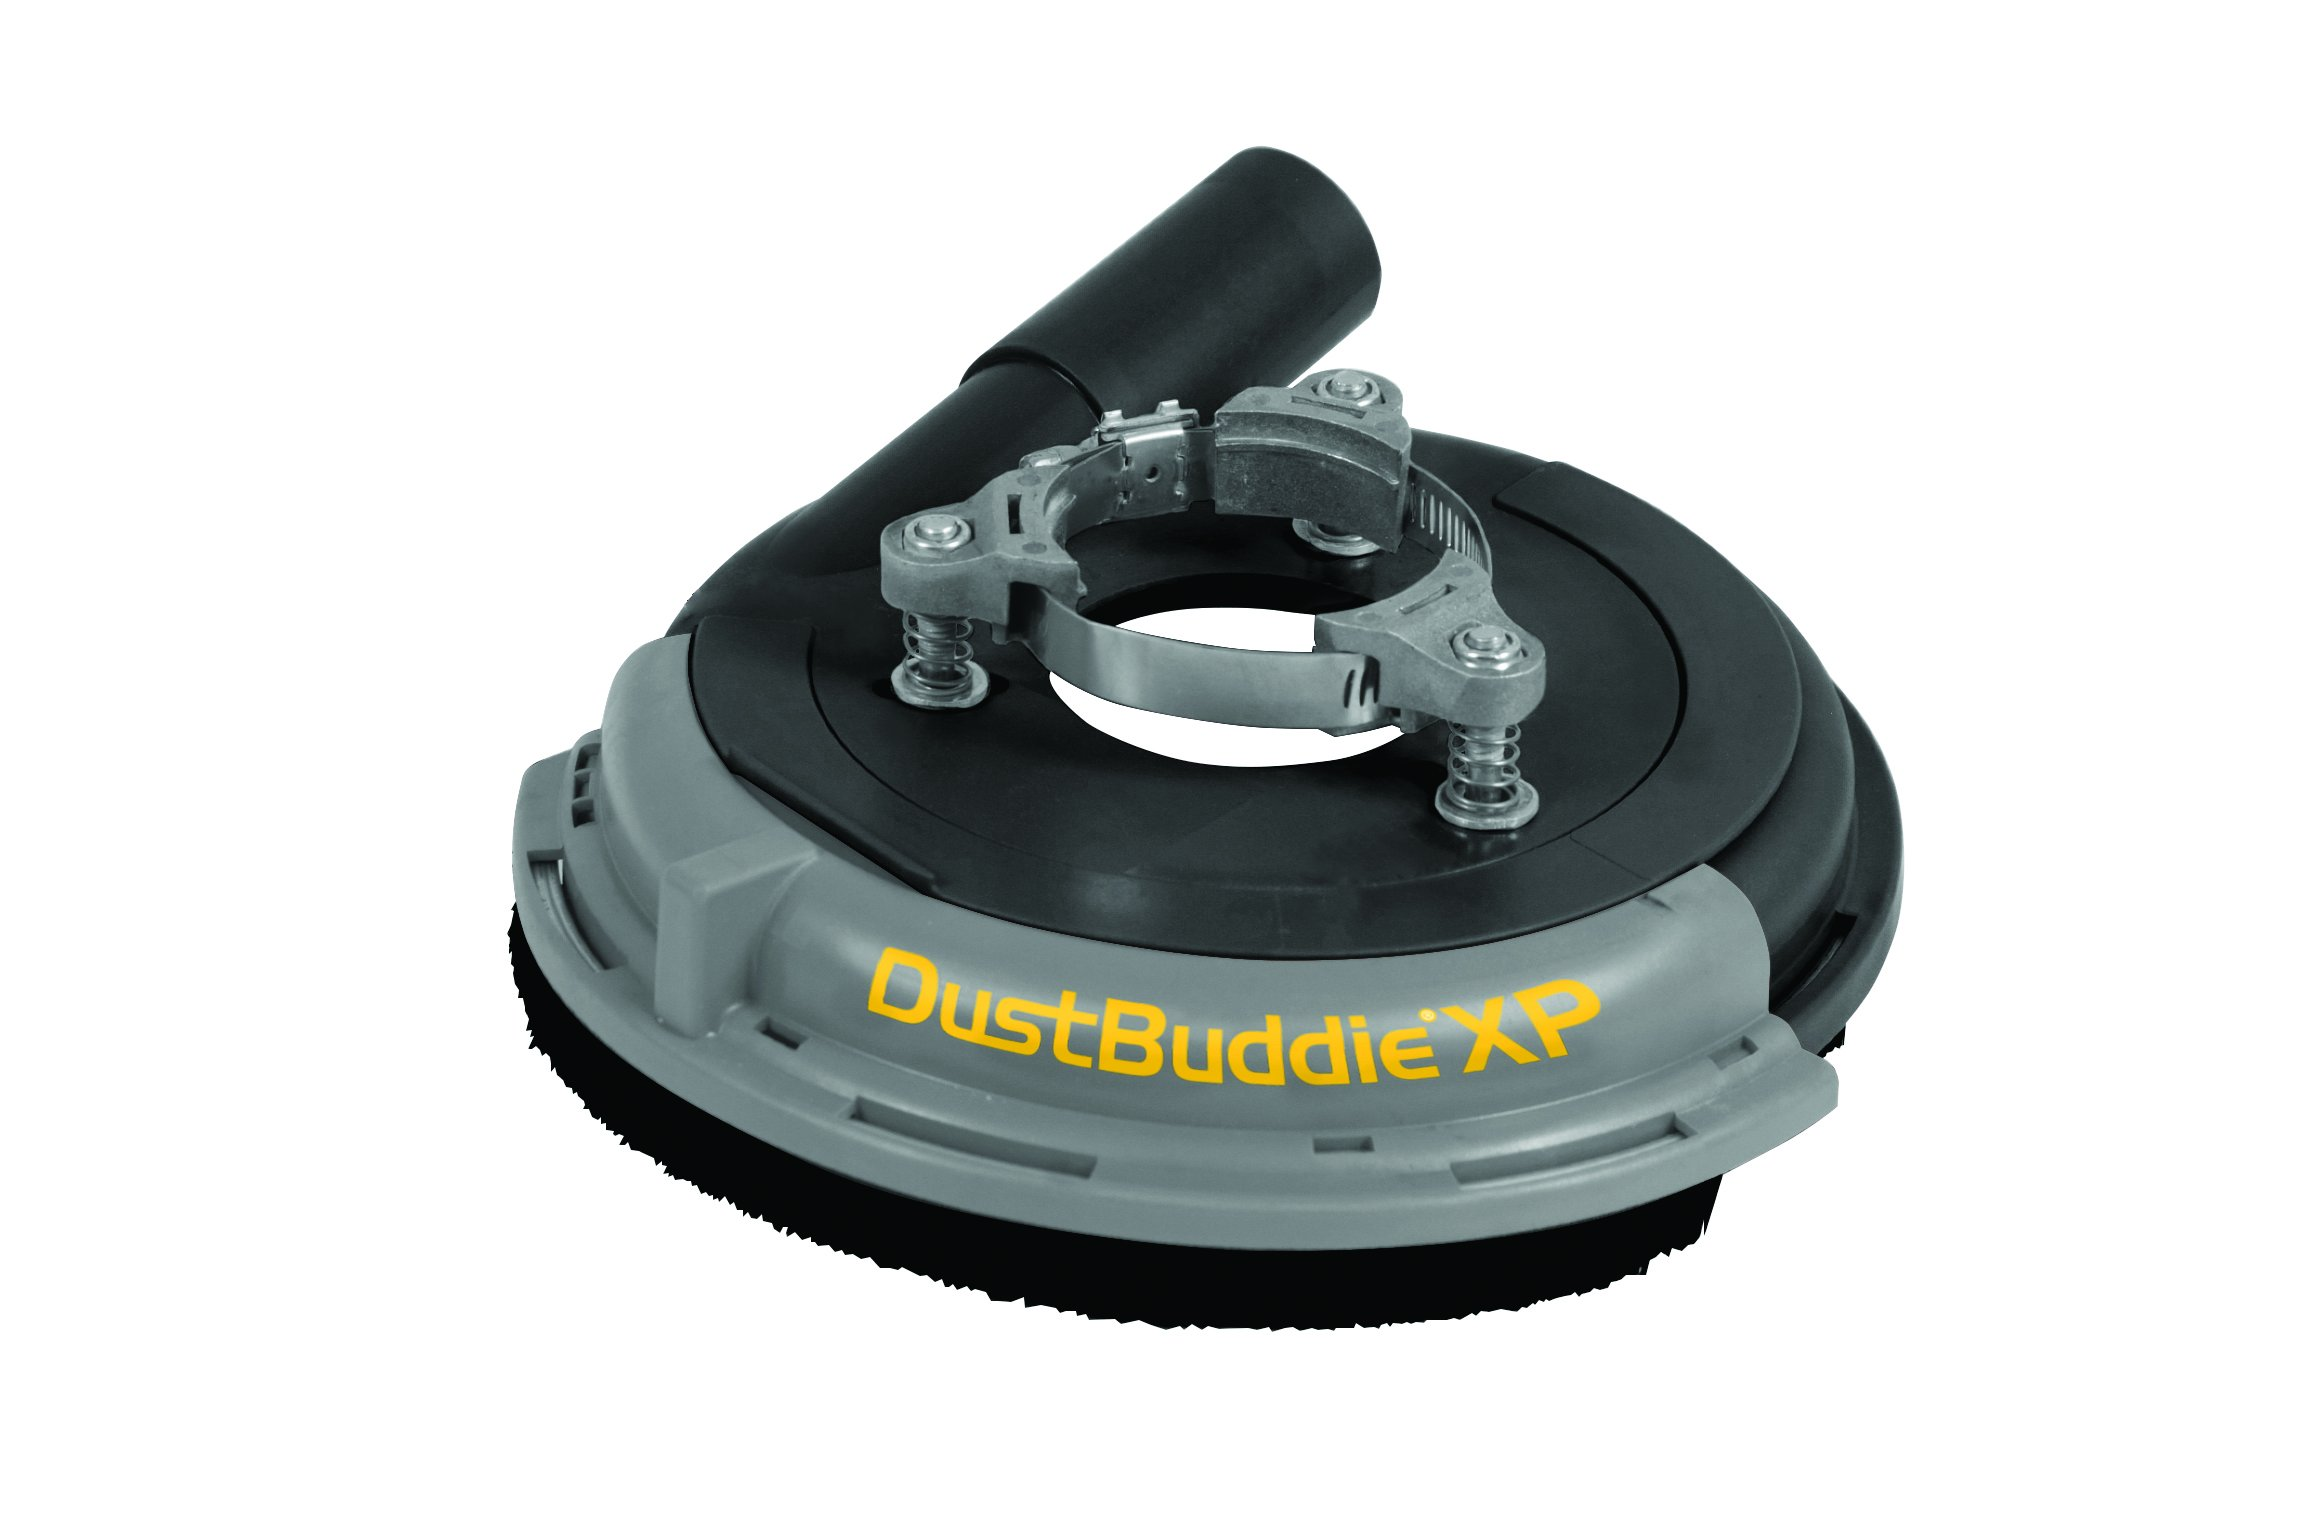 Dustless Technologies D5850 Dust Buddie XP Universal Dust Control Attachment for Grinders, 7'', Black/Gray by Dustless Technologies